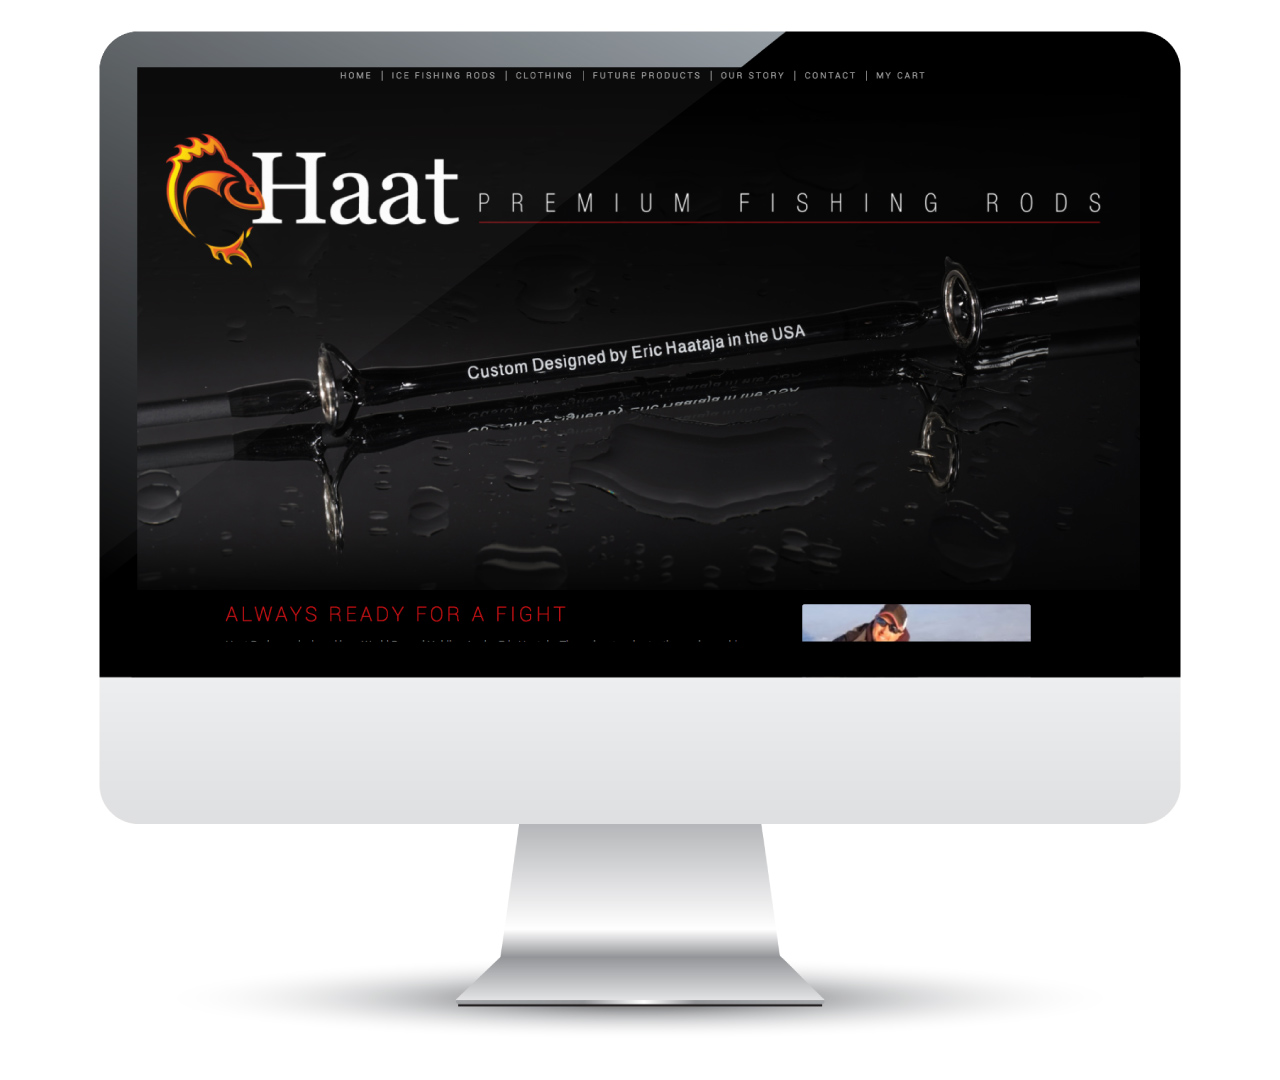 Haat Website Design & Development 1